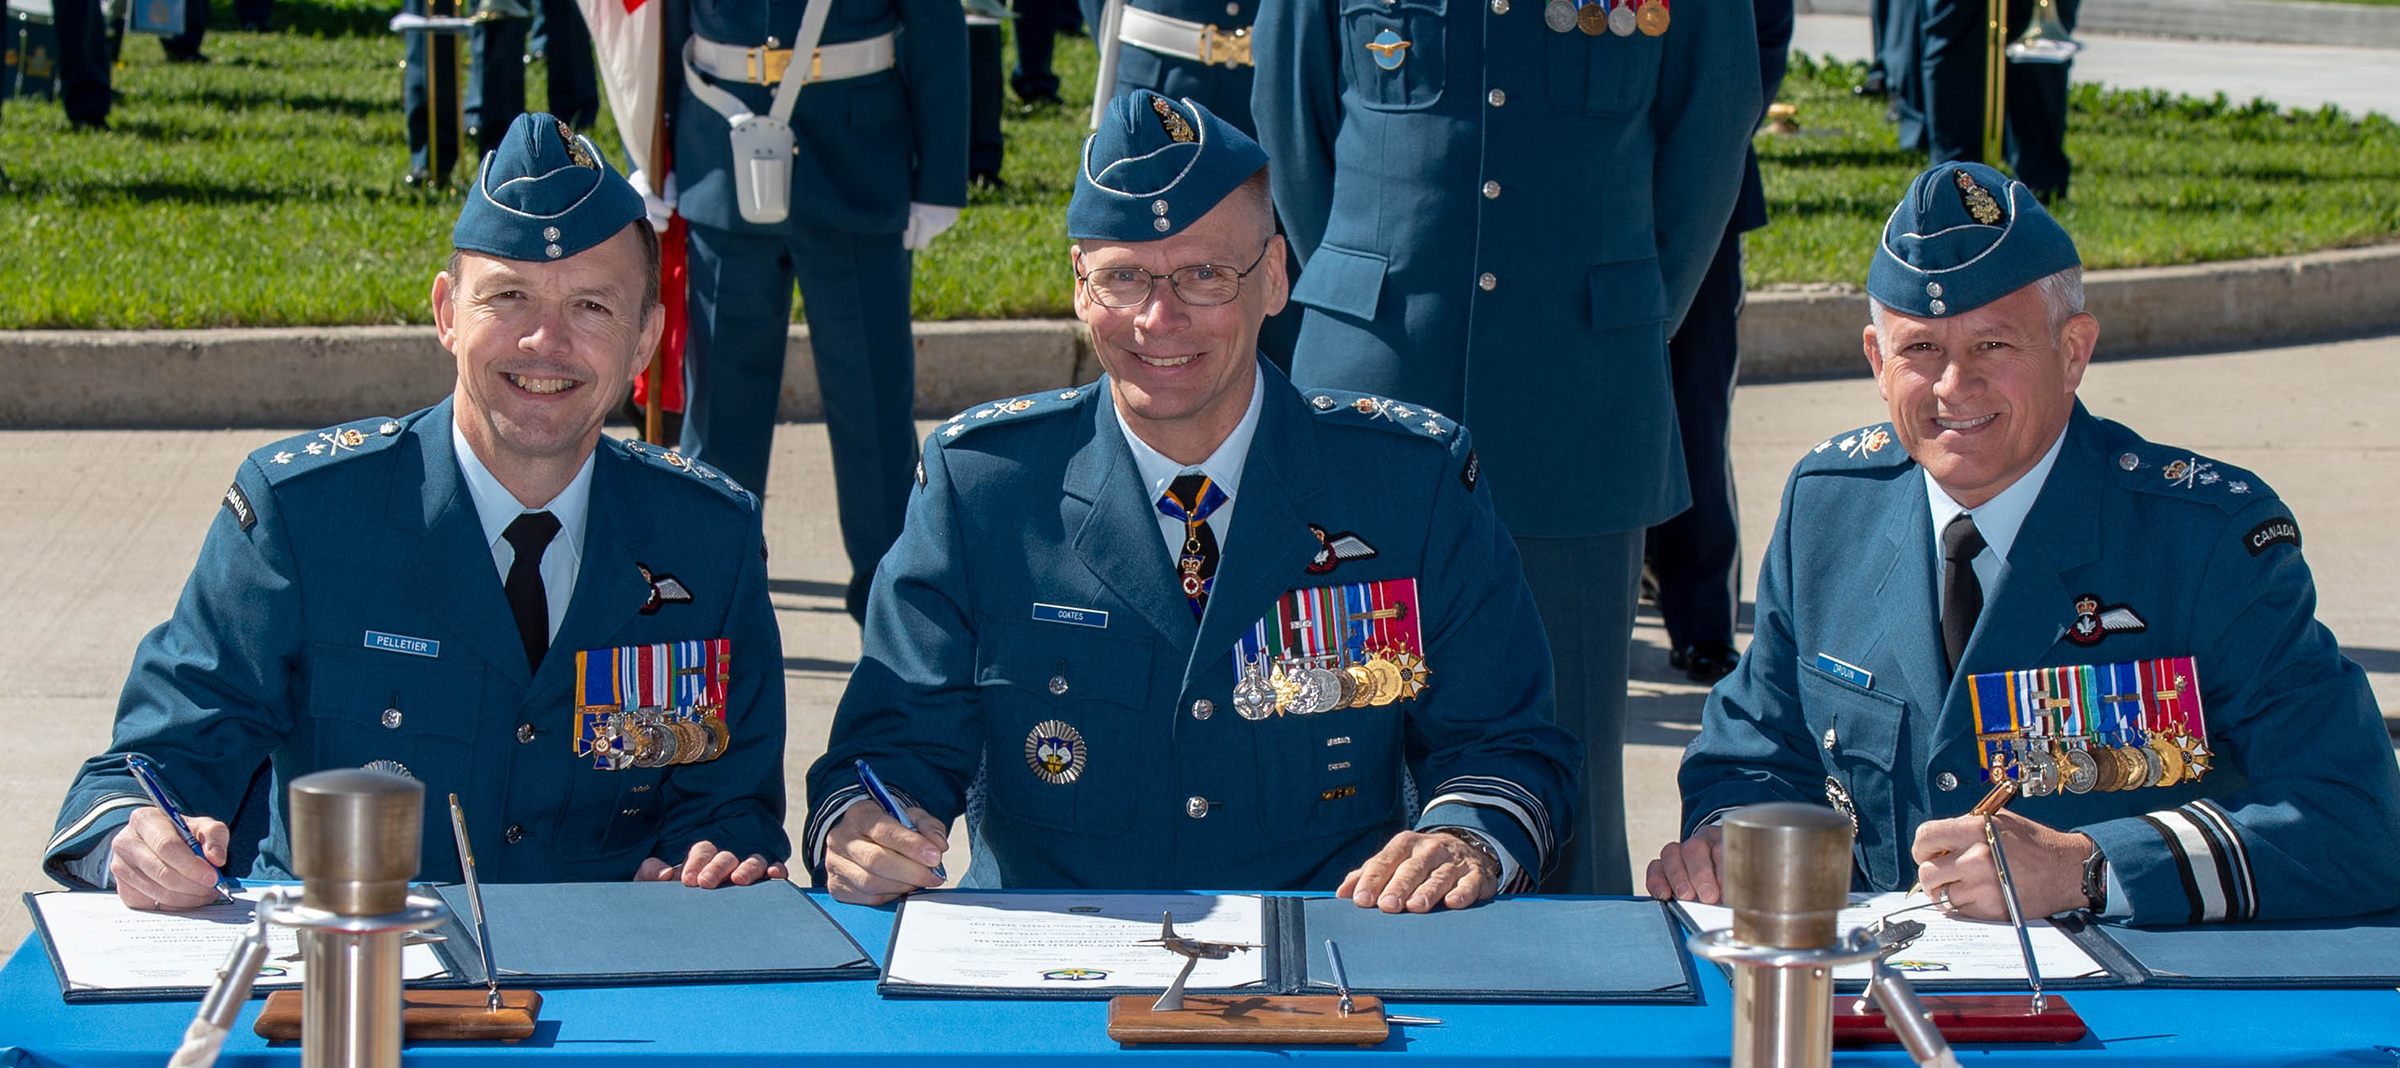 Lieutenant-General Christopher Coates (centre), deputy commander of NORAD, oversees the signing of the change of command certificates for the Canadian NORAD Region from Major-General Christian Drouin (right) to Major-General Alain Pelletier. PHOTO: Corporal Bryce Cooper, WG2019-0214-035